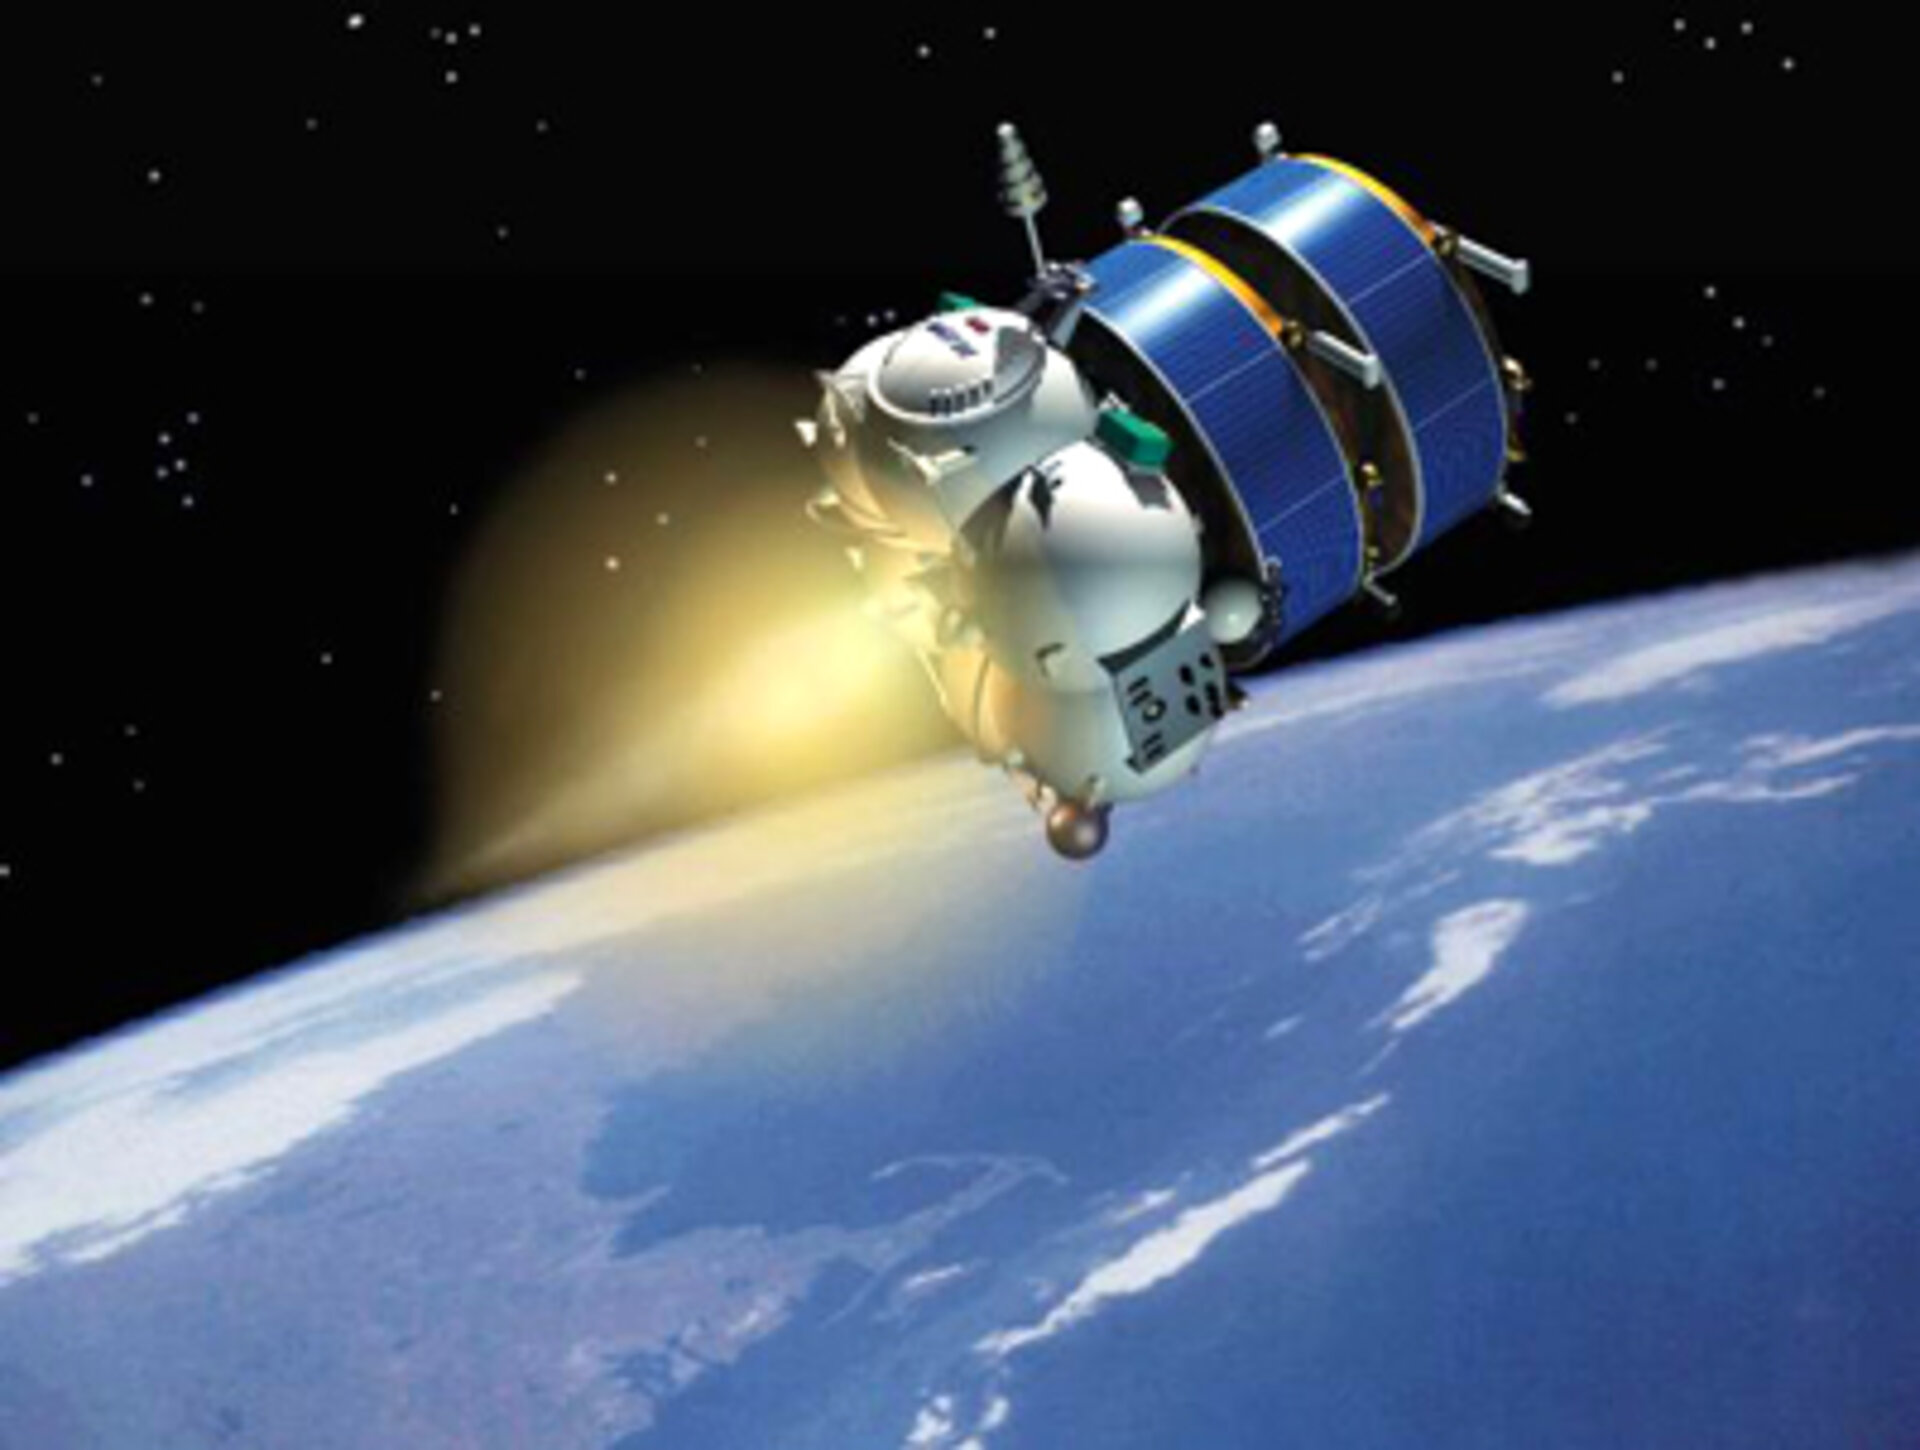 Artist's impression of Fregat carrying two Cluster spacecraft into orbit